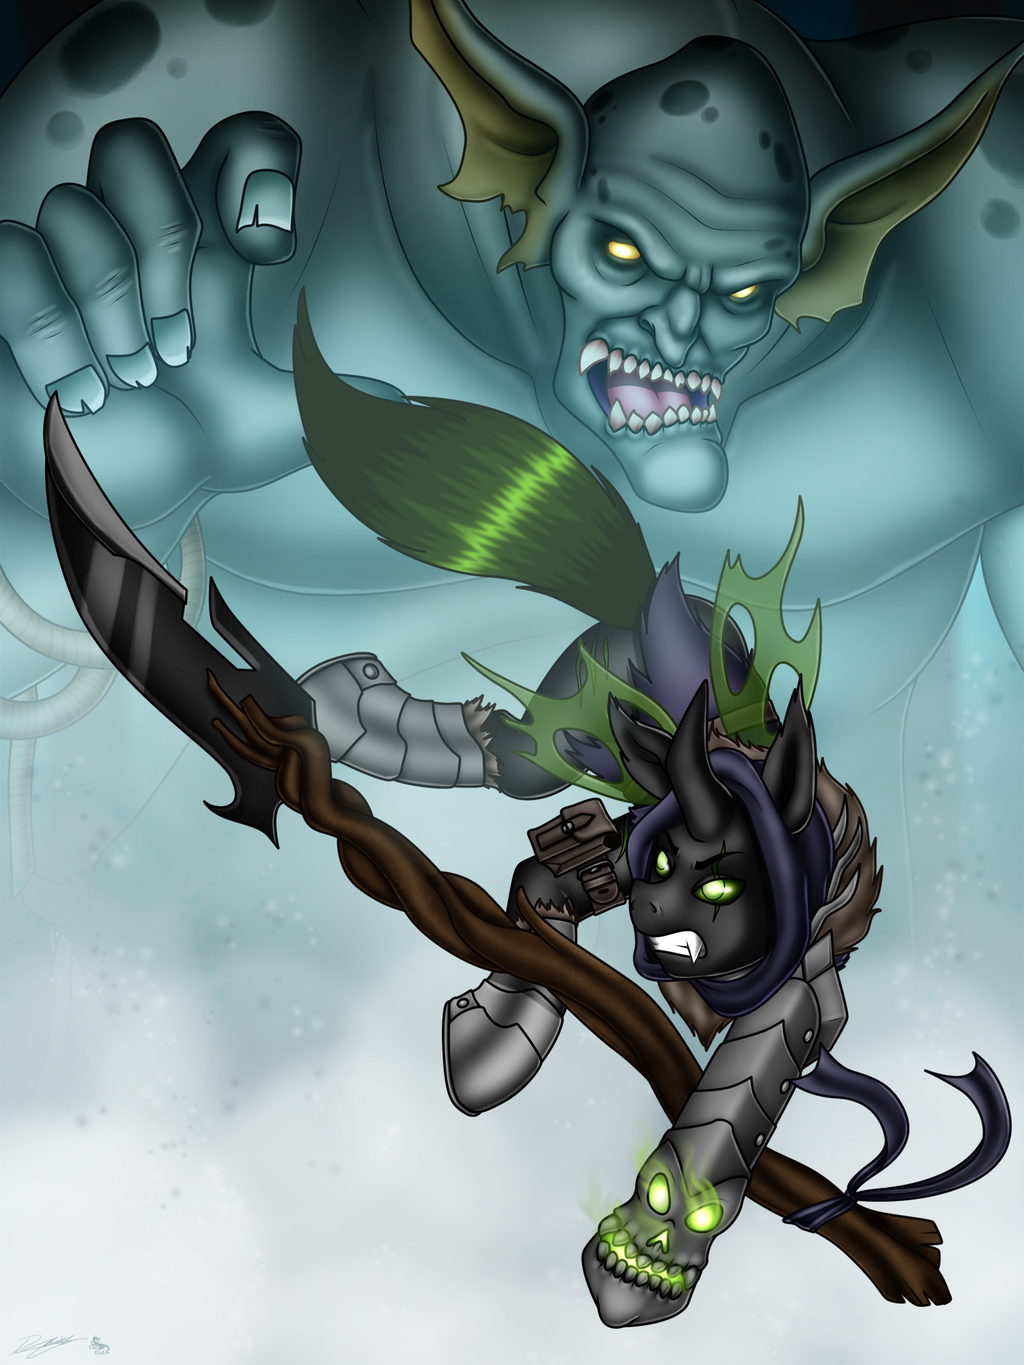 Most recent image: Cryxus the Brave